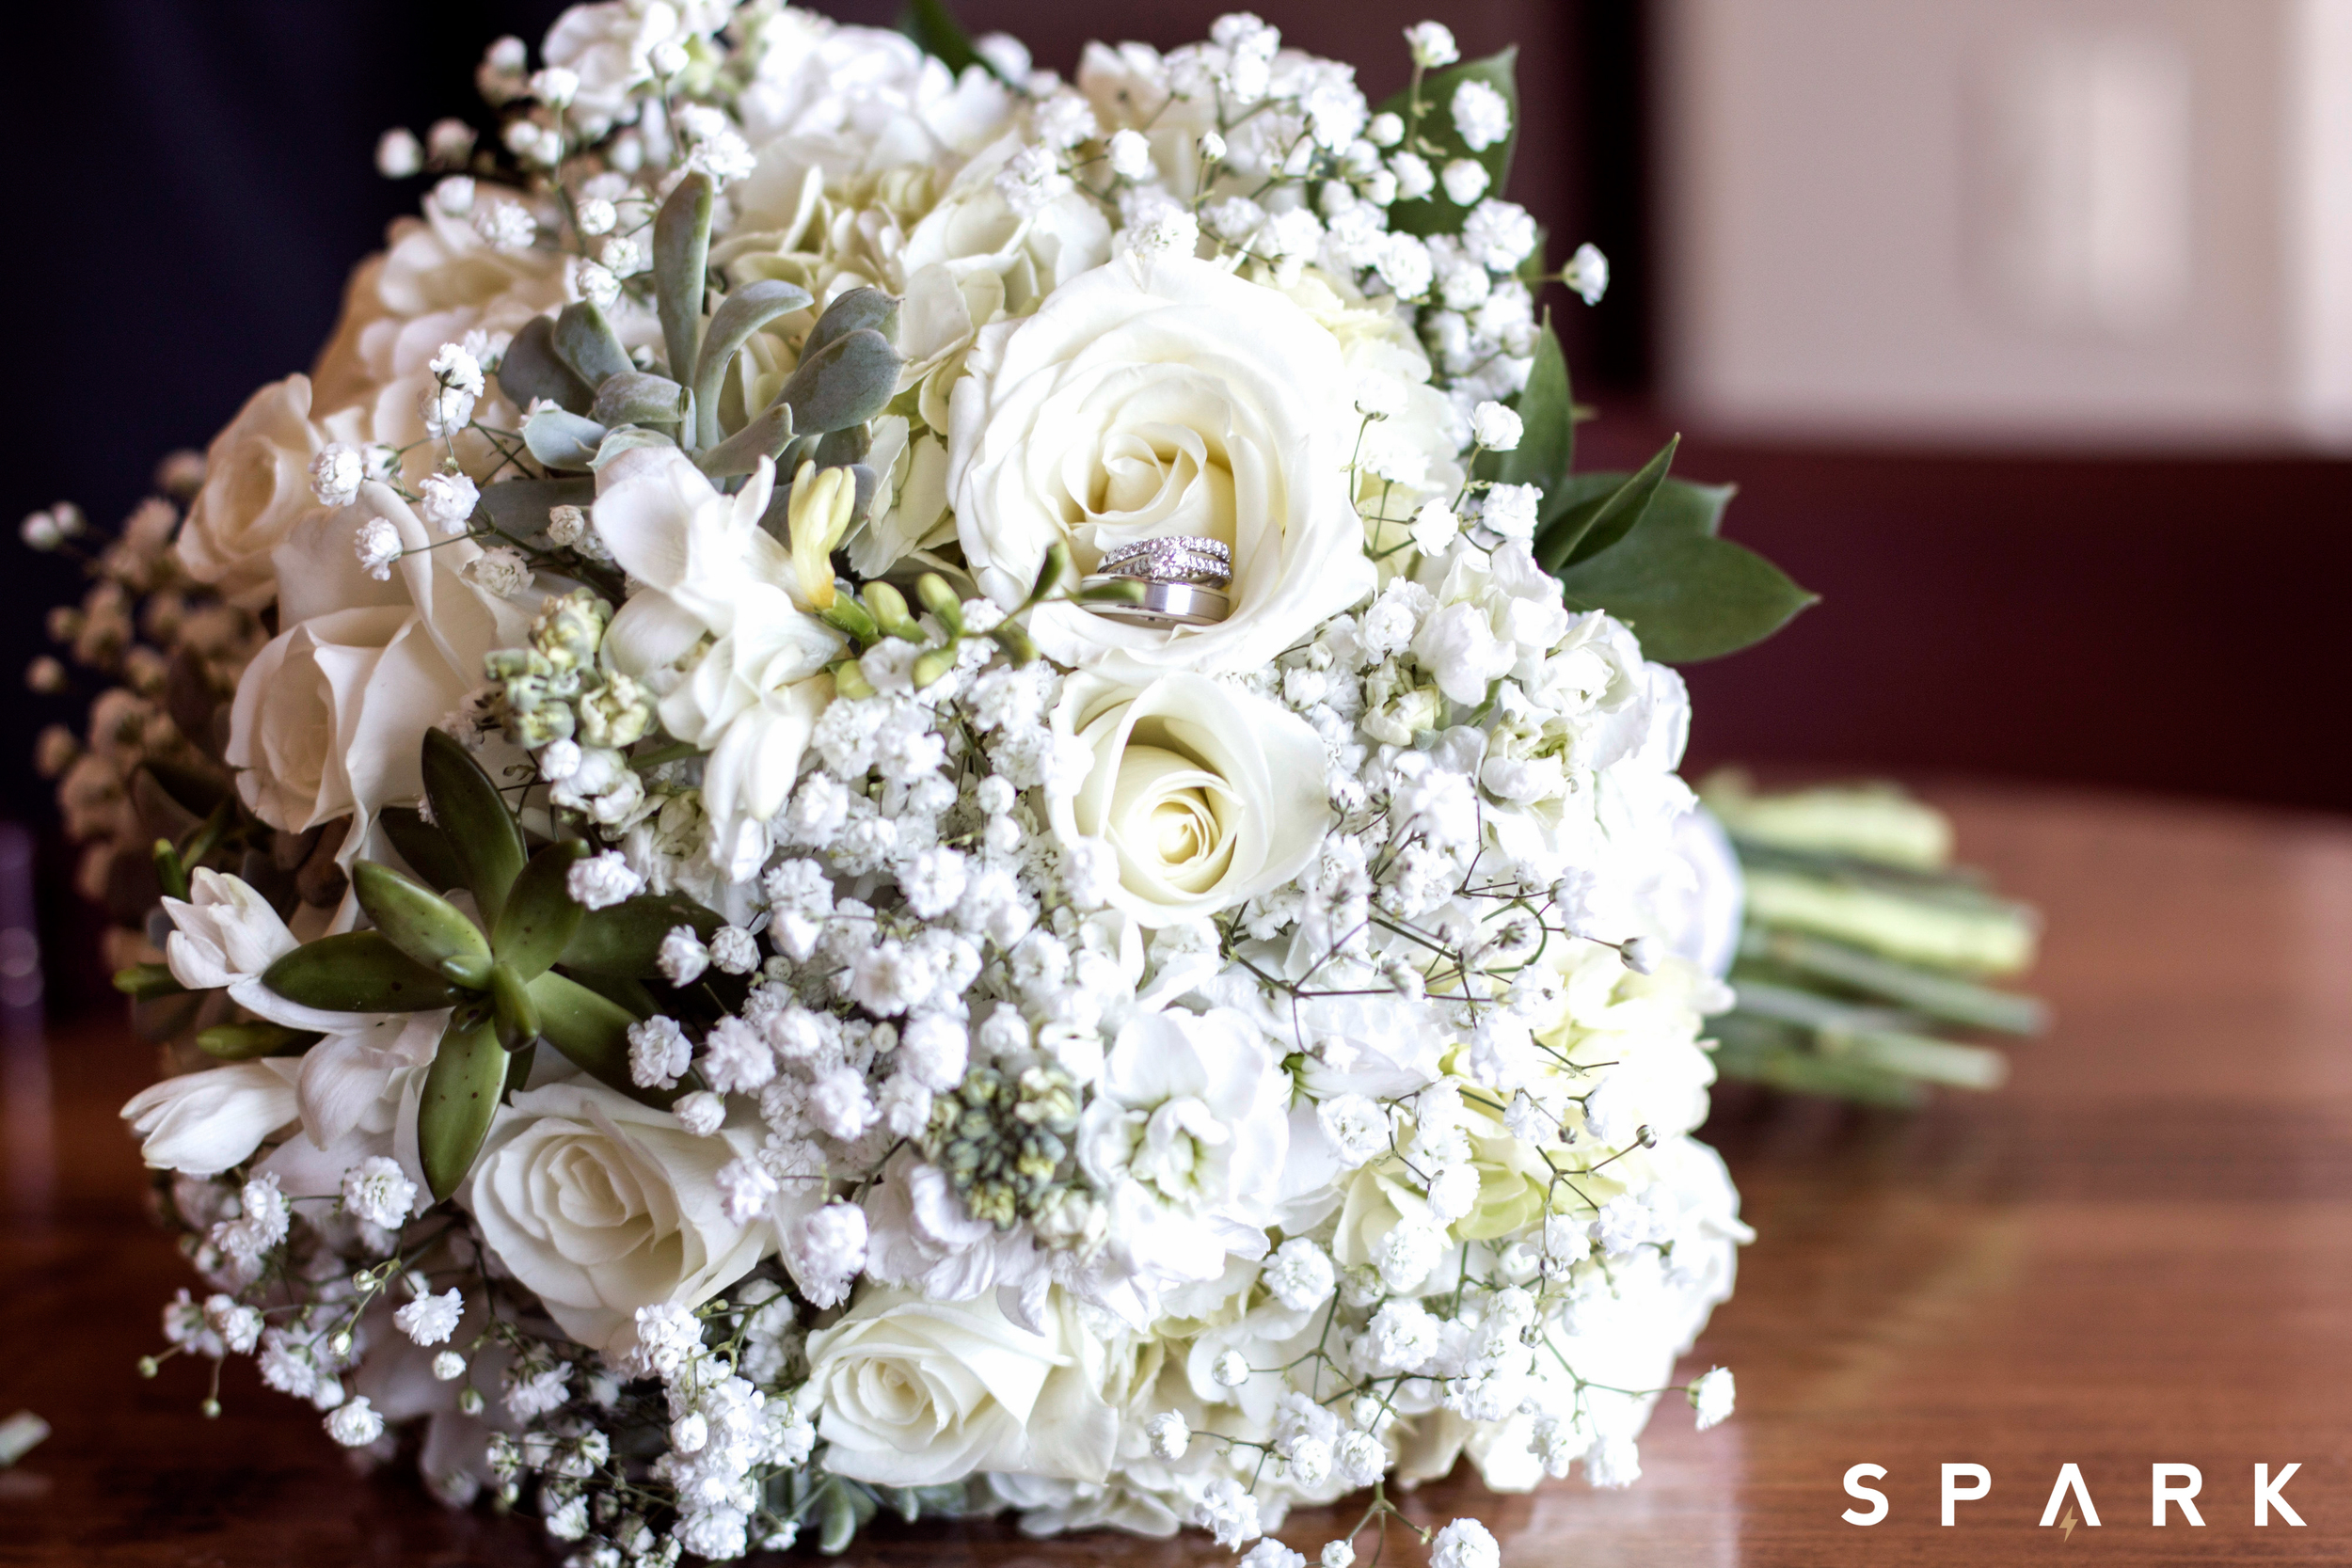 Pictured Above : Kelli's bouquet arrangement consisted of white roses, hydrangeas, baby's breath, and succulent accents.